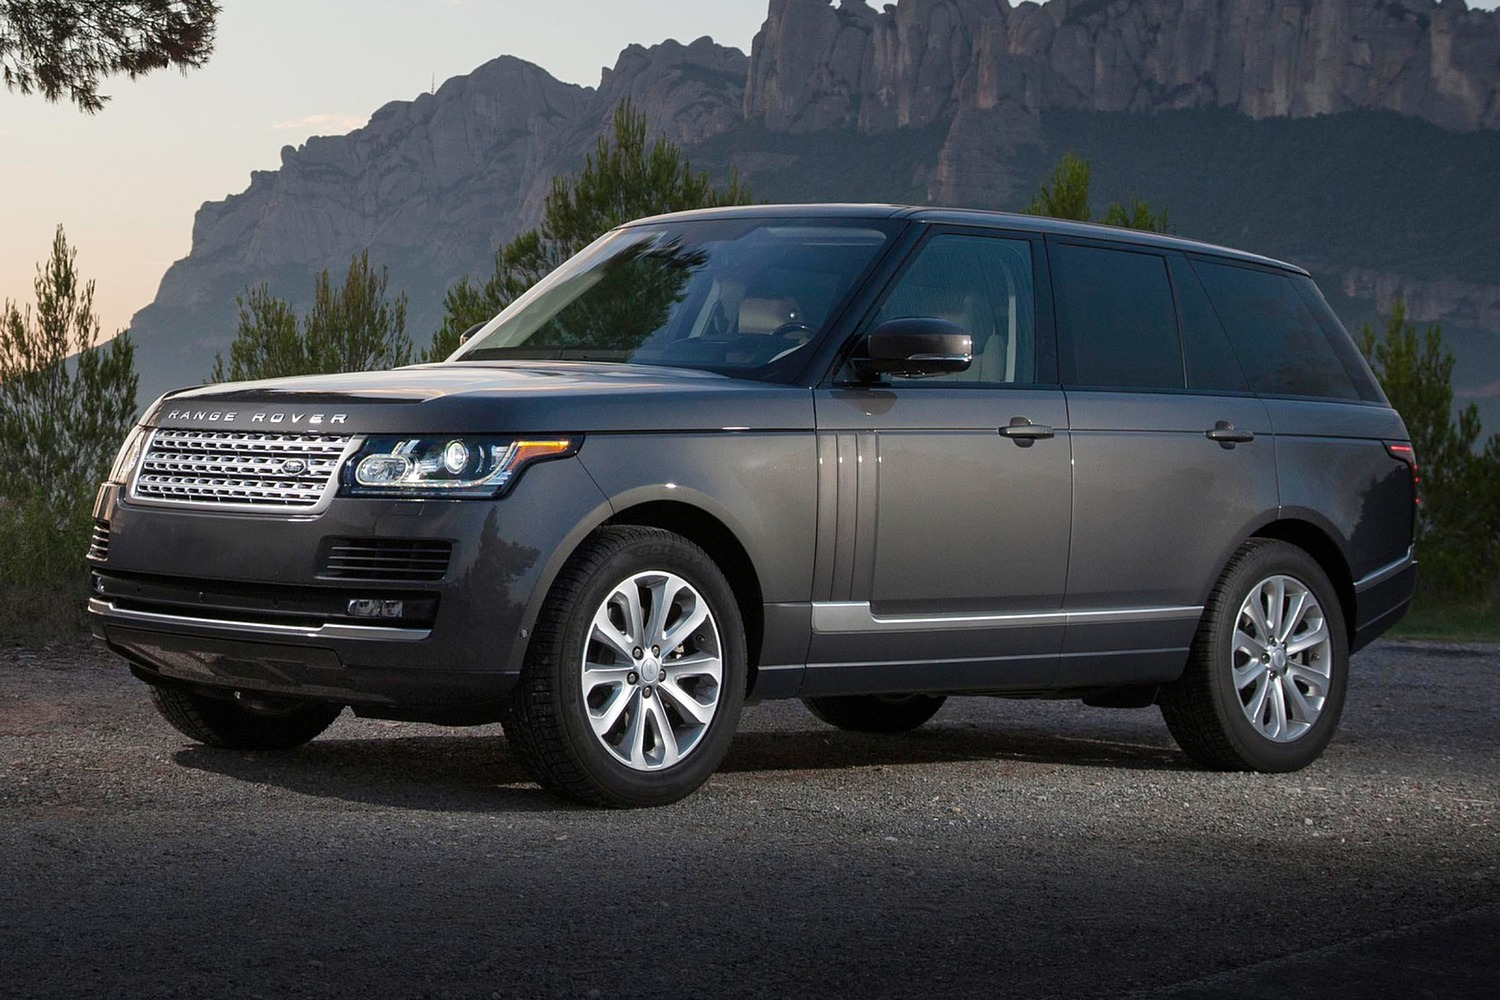 2016 land rover range rover suv diesel vehie. Black Bedroom Furniture Sets. Home Design Ideas